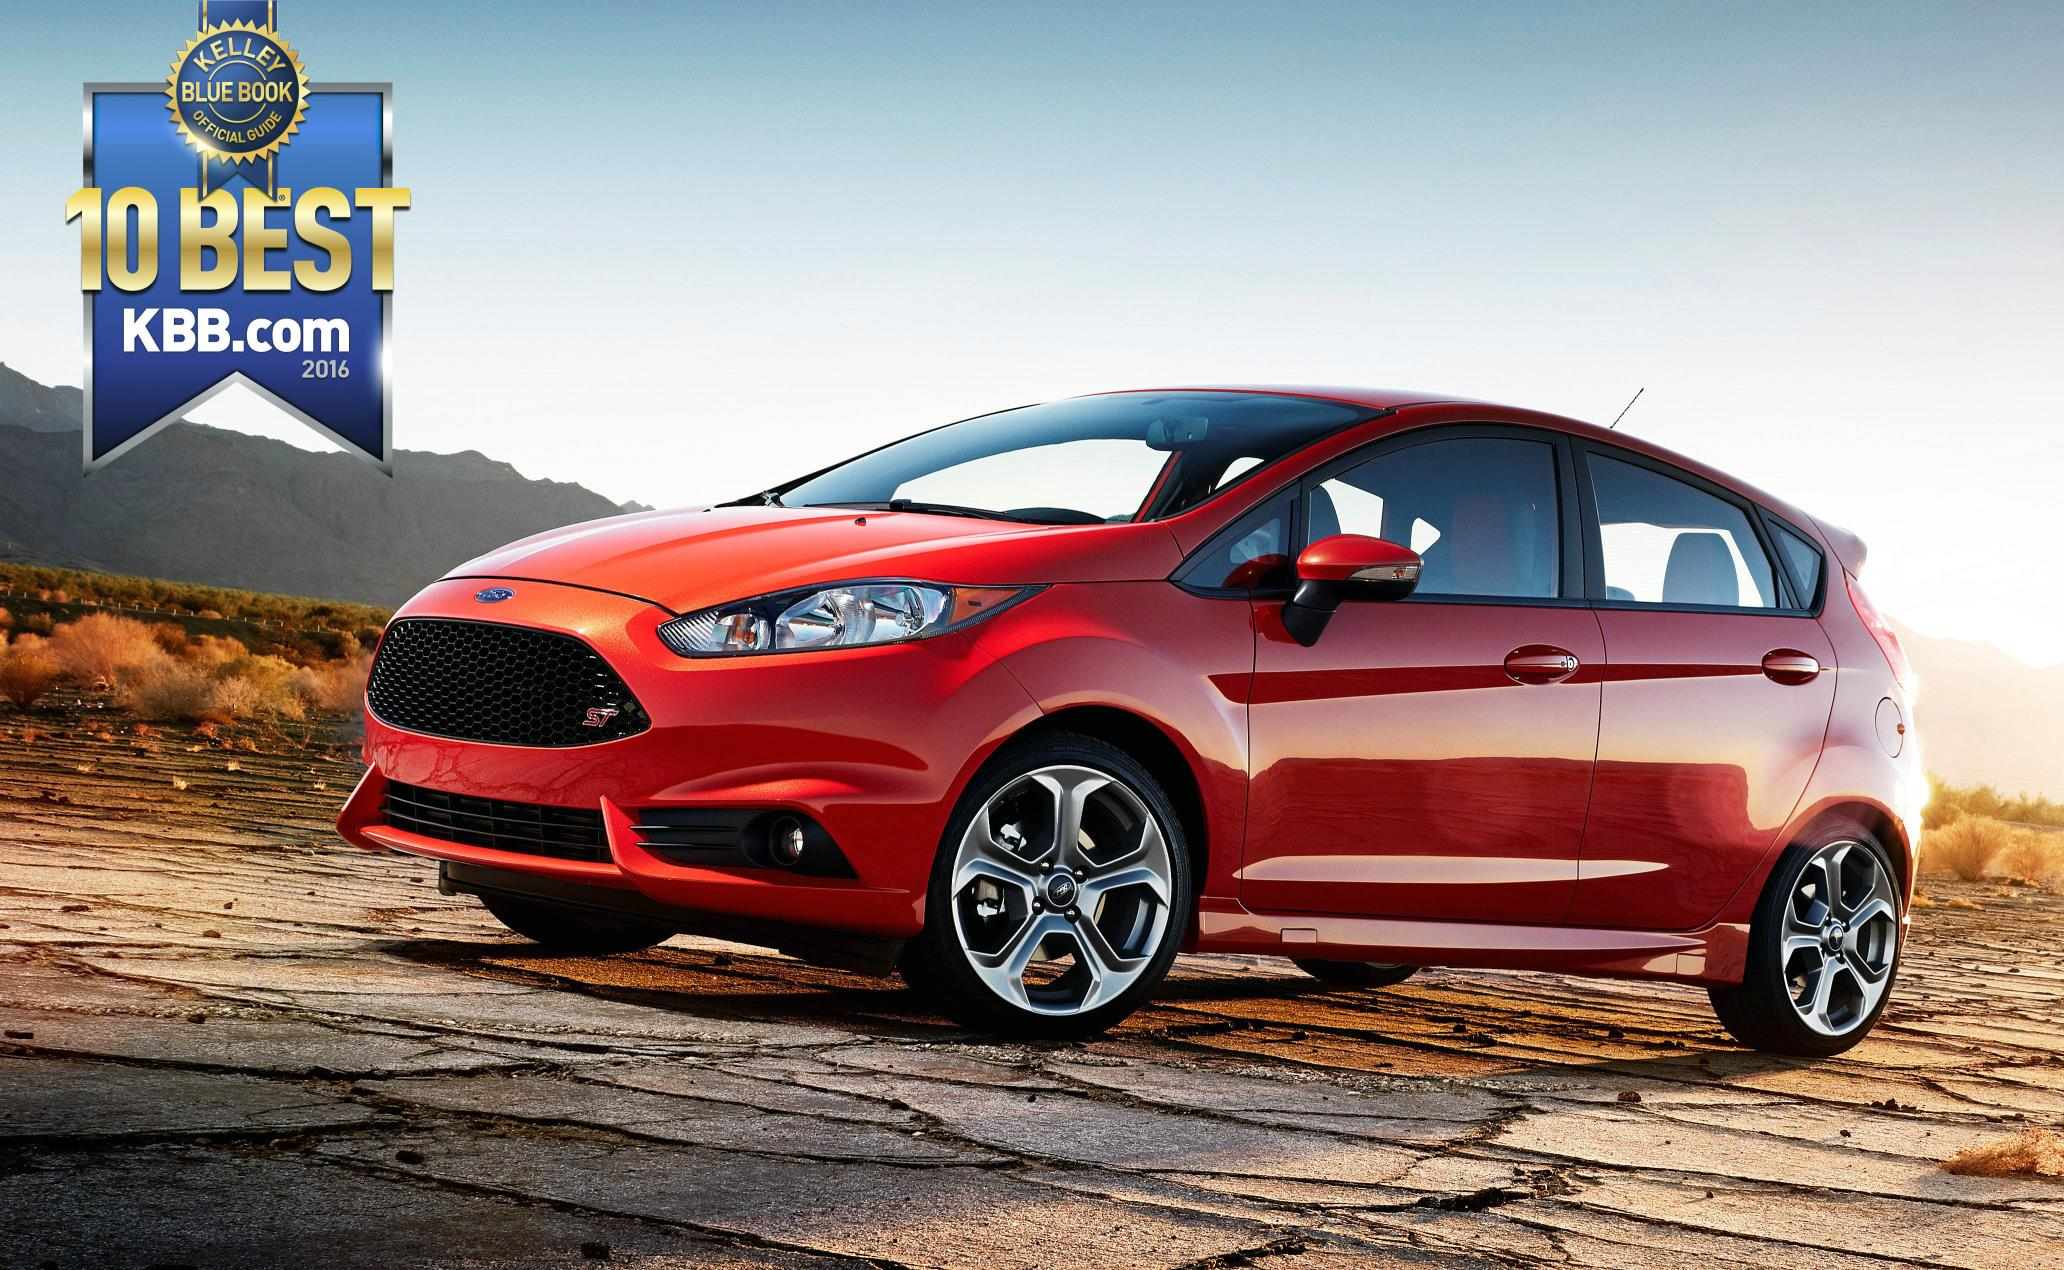 Scott Ford | Versatility and Value: Ford Fiesta makes KBB\'s Top Ten ...